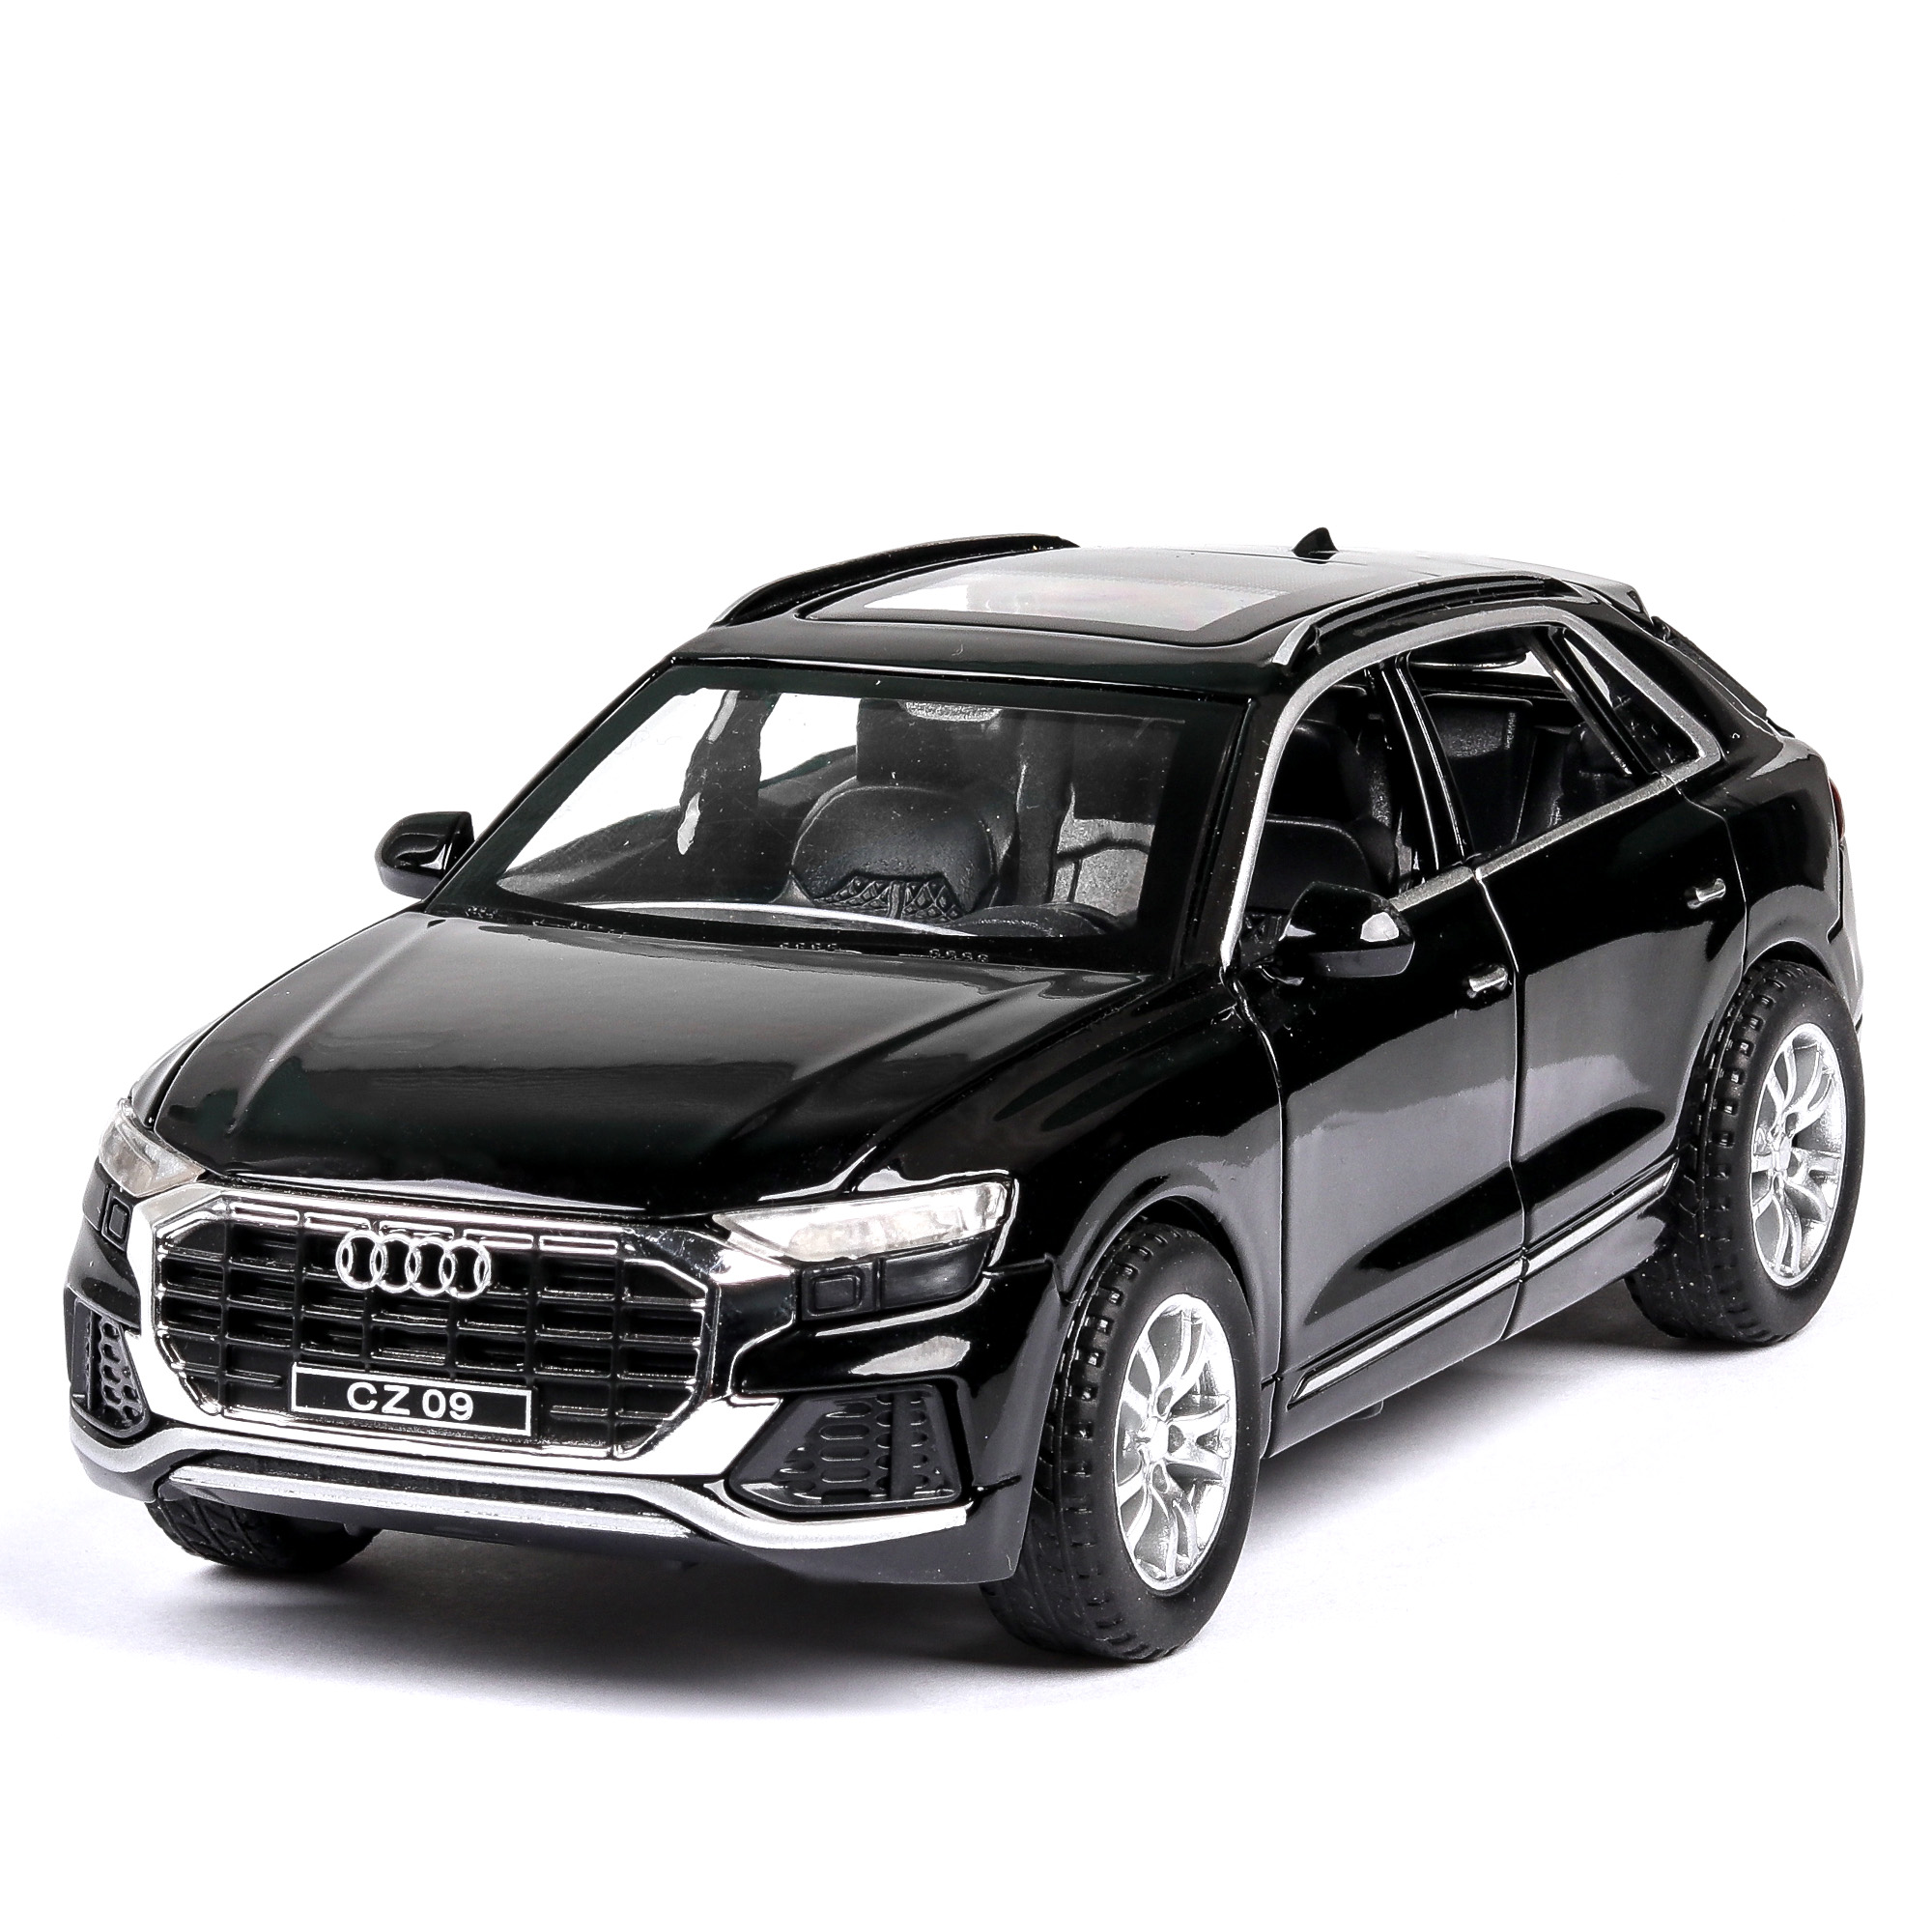 1/32 AUDI Q8 Alloy metal car Model diecast toys for kids collection/Die Cast Vehicles pull-back vehicle kids gift car model #ZW image